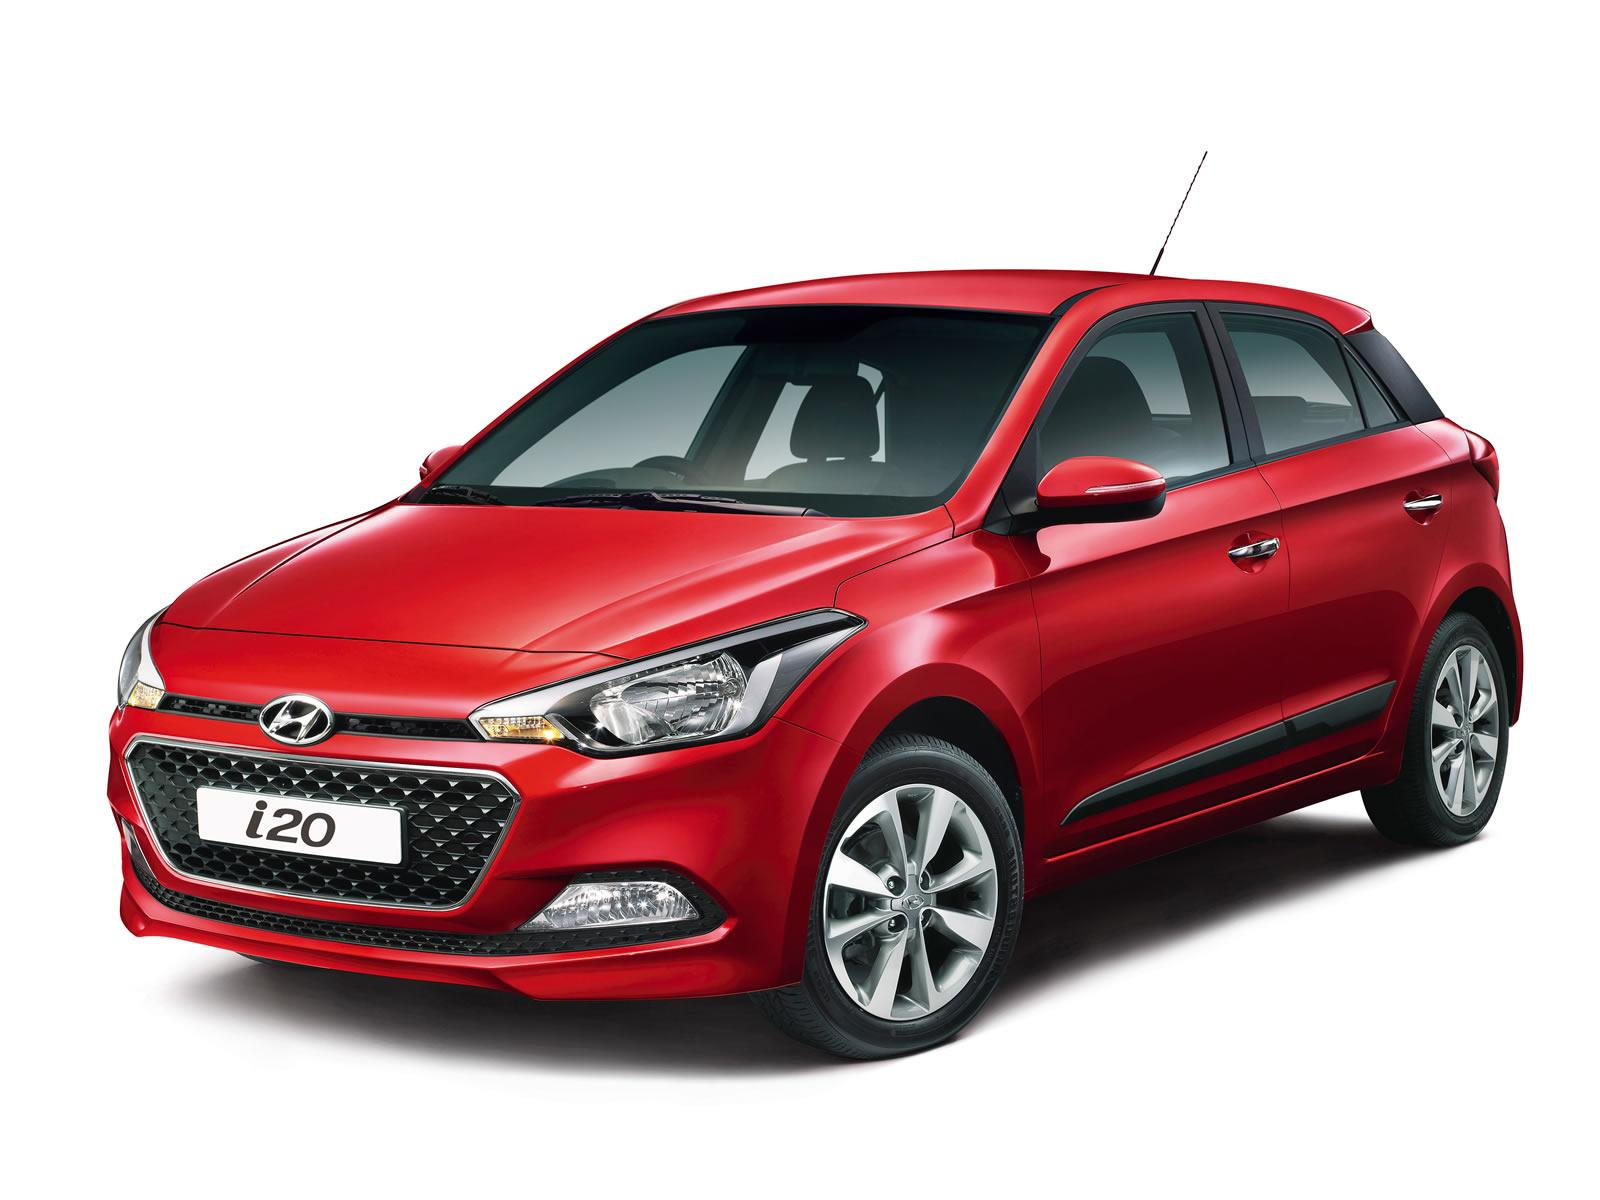 2015 Hyundai i20 officially unveiled - Turkeycarblog